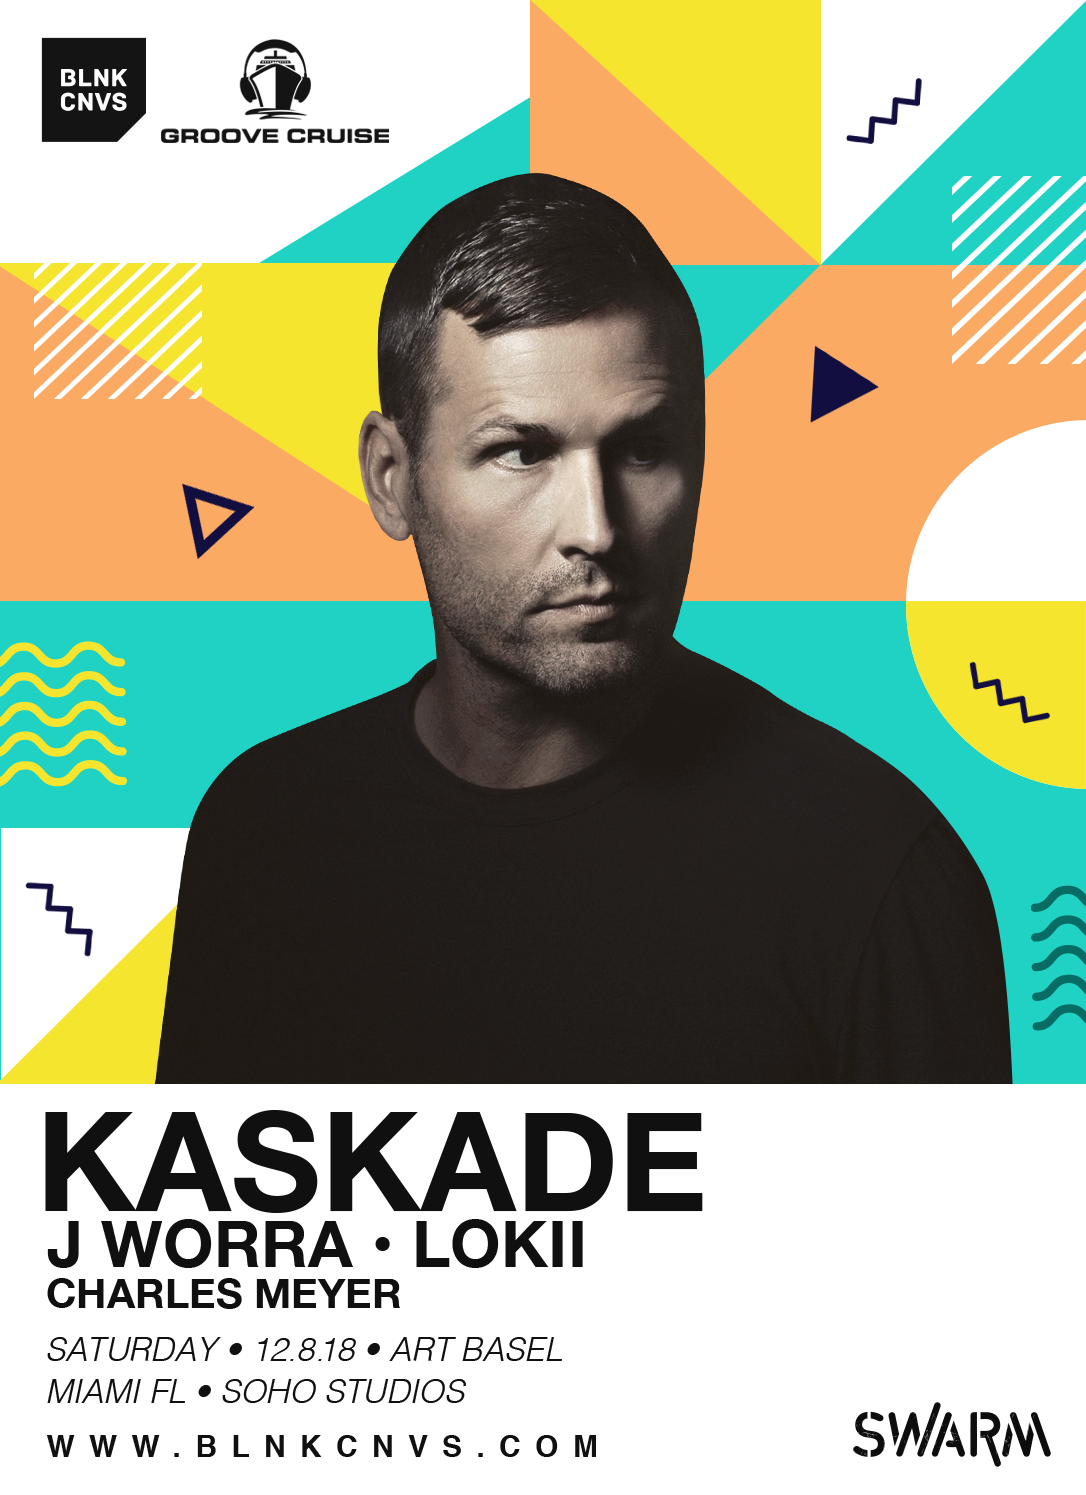 4th Art Basel event will feature Kaskade, J Worra and more!